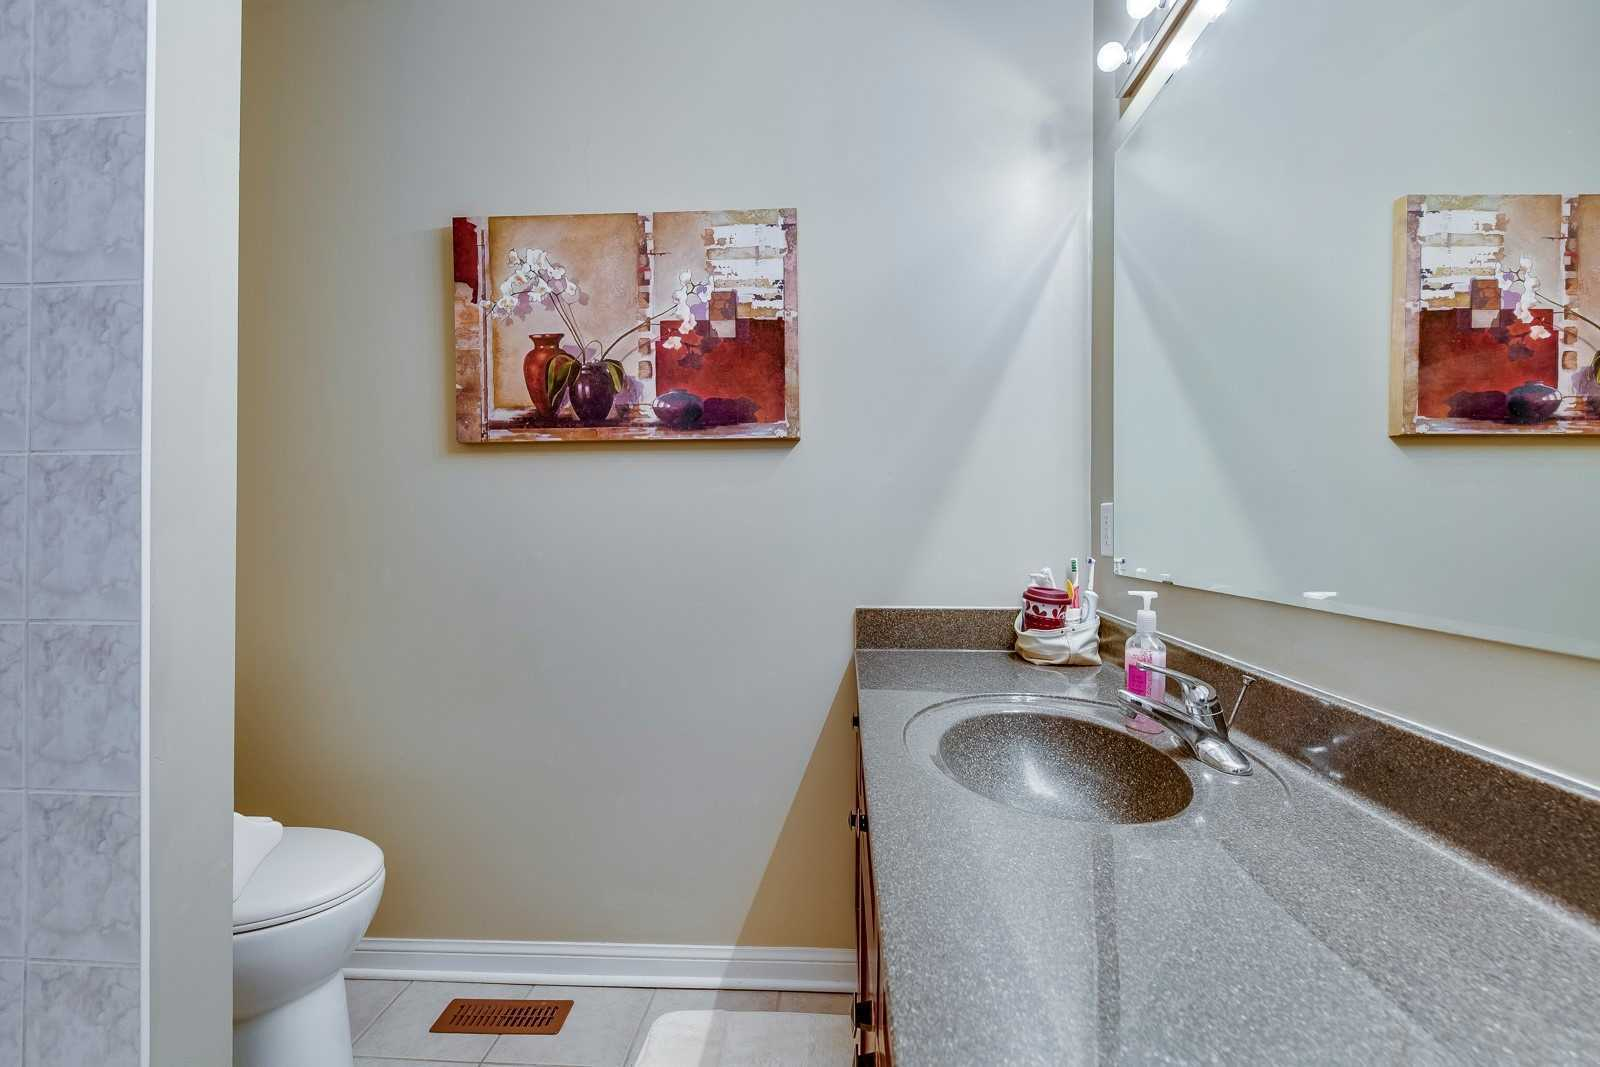 Image 10 of 20 showing inside of 3 Bedroom Att/Row/Twnhouse 2-Storey house for sale at 682 Edwards Ave, Milton L9T6B3